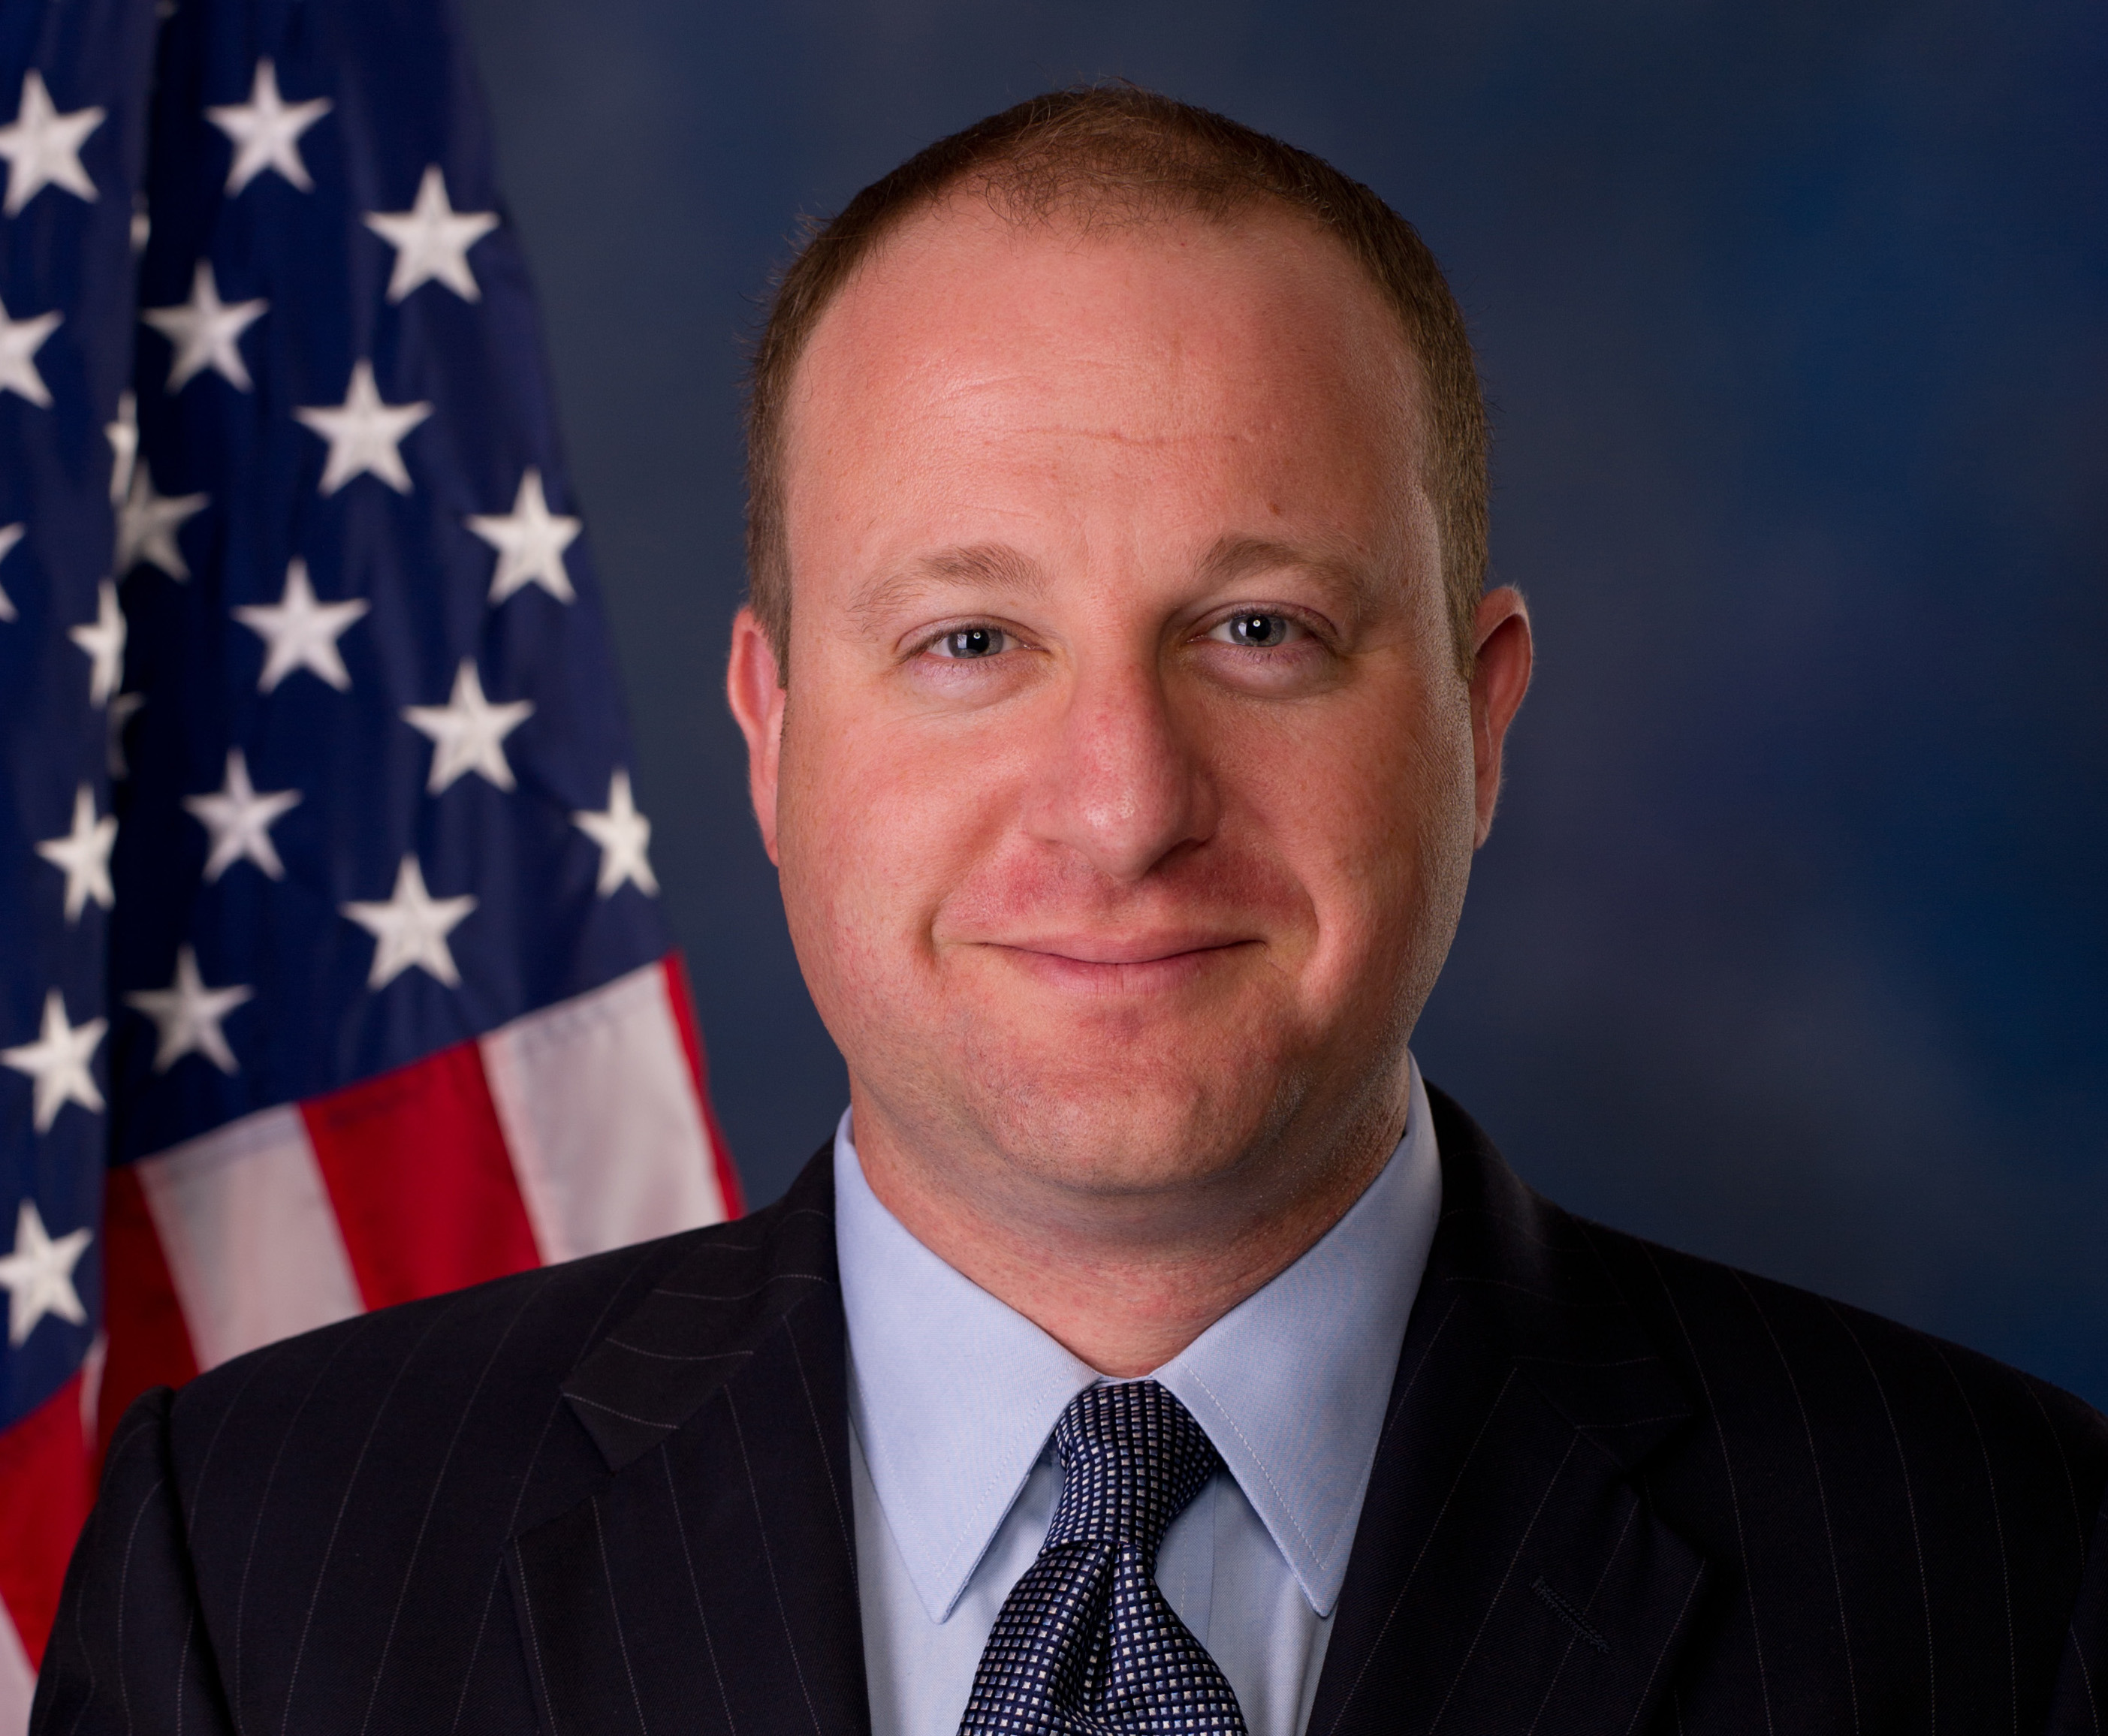 Office of Congressman Jared Polis/Wikimedia Commons